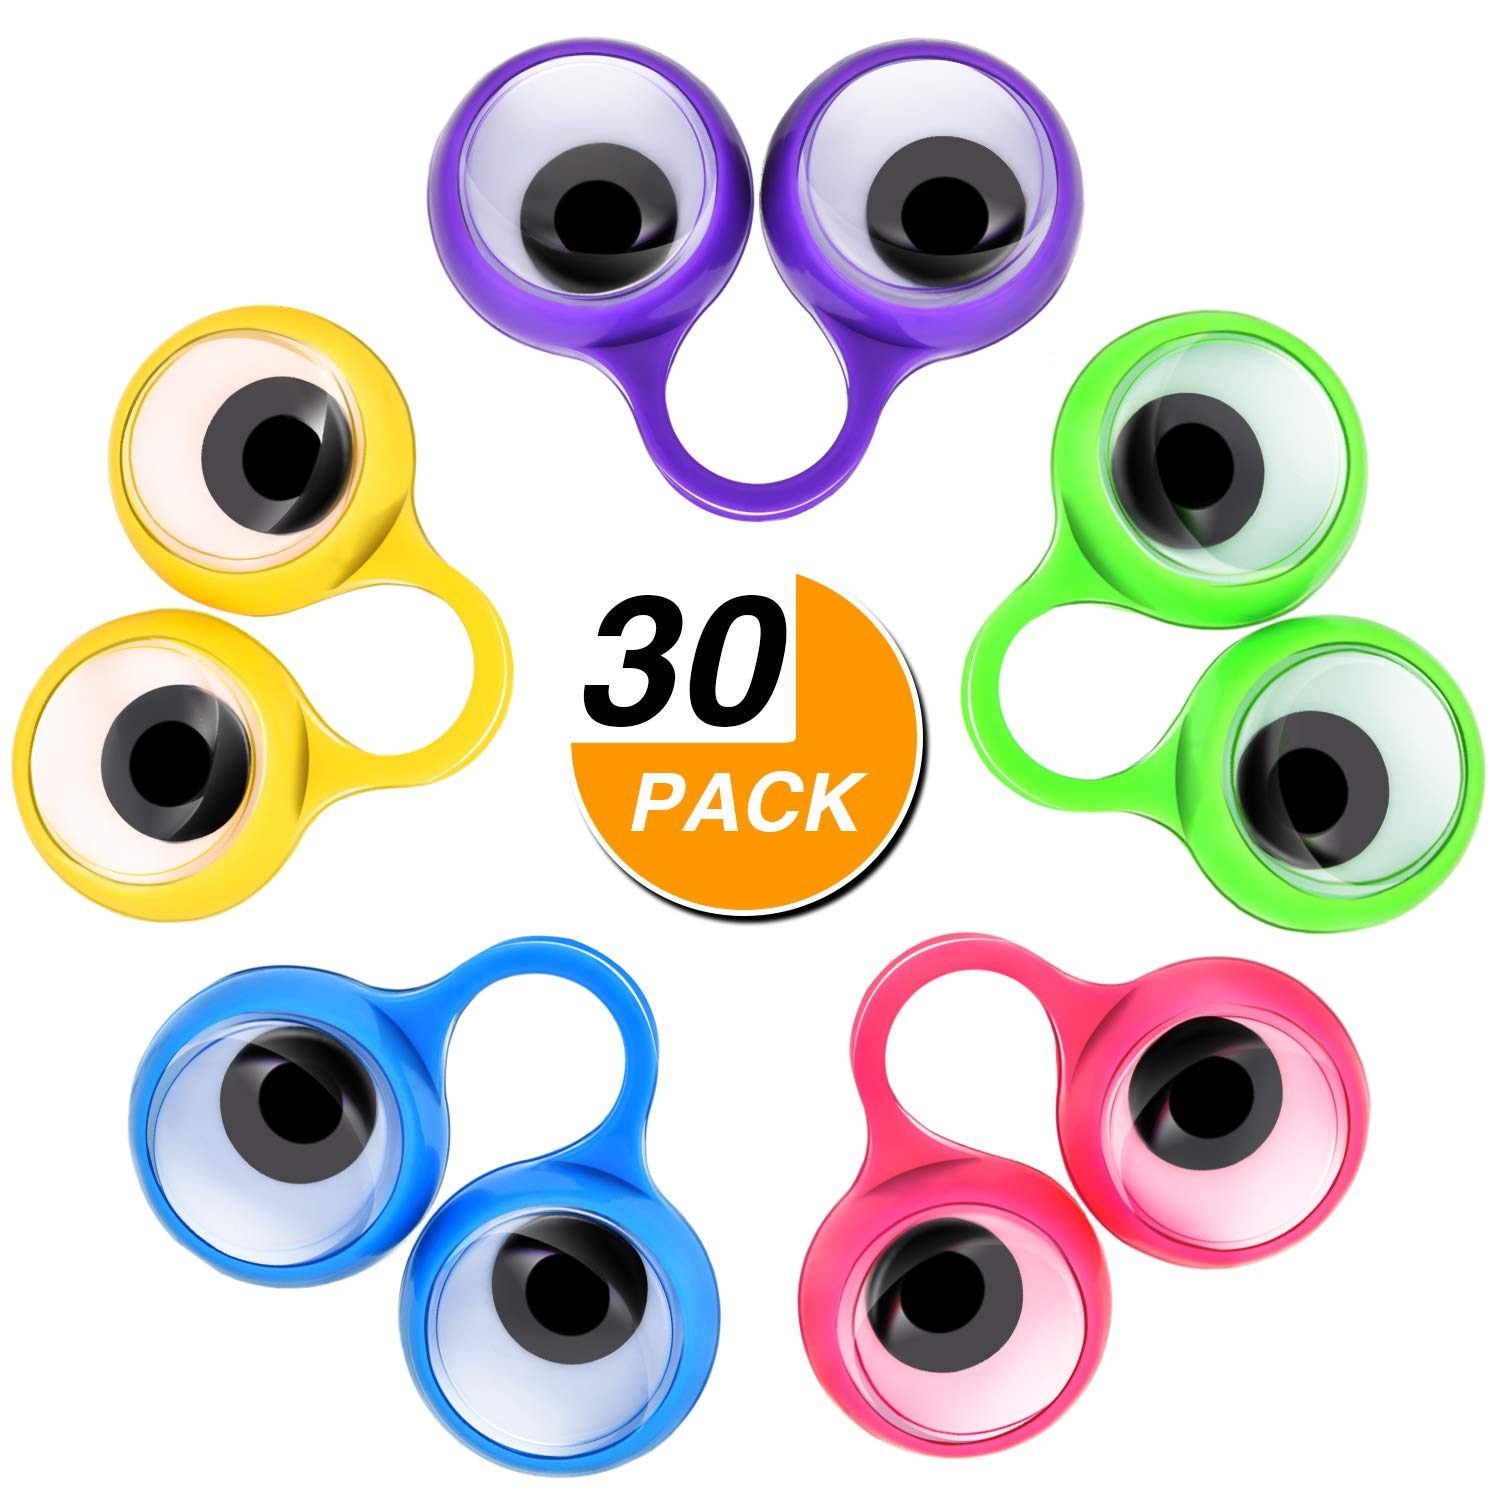 Frienda 30 Pieces Eye Finger Puppets Eye On Rings Googly Eyeball Ring Party Favor Toys Kids, 5 Colors (Large Size)